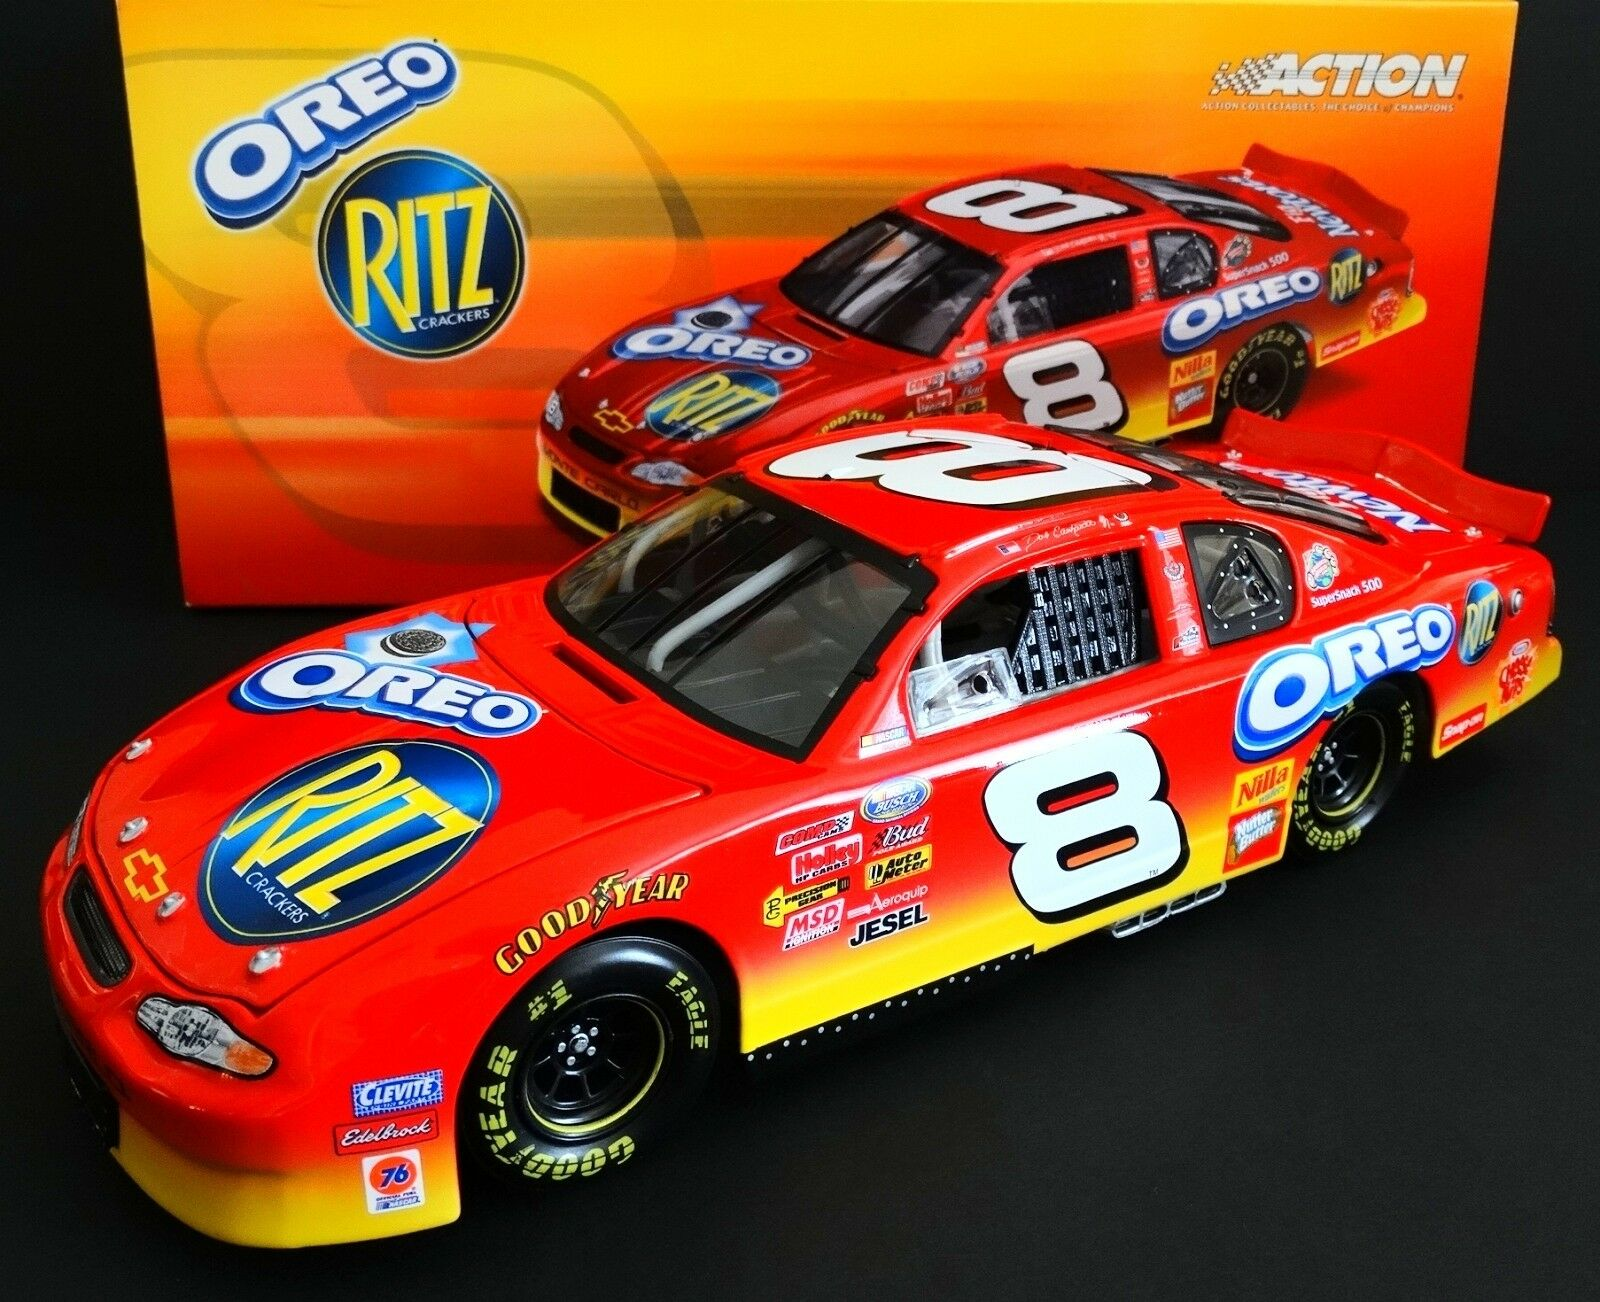 Dale Earnhardt, Jr. Ritz Oreo 1 18 Action 2003 DAYTONA WIN Monte Carlo 1 4056